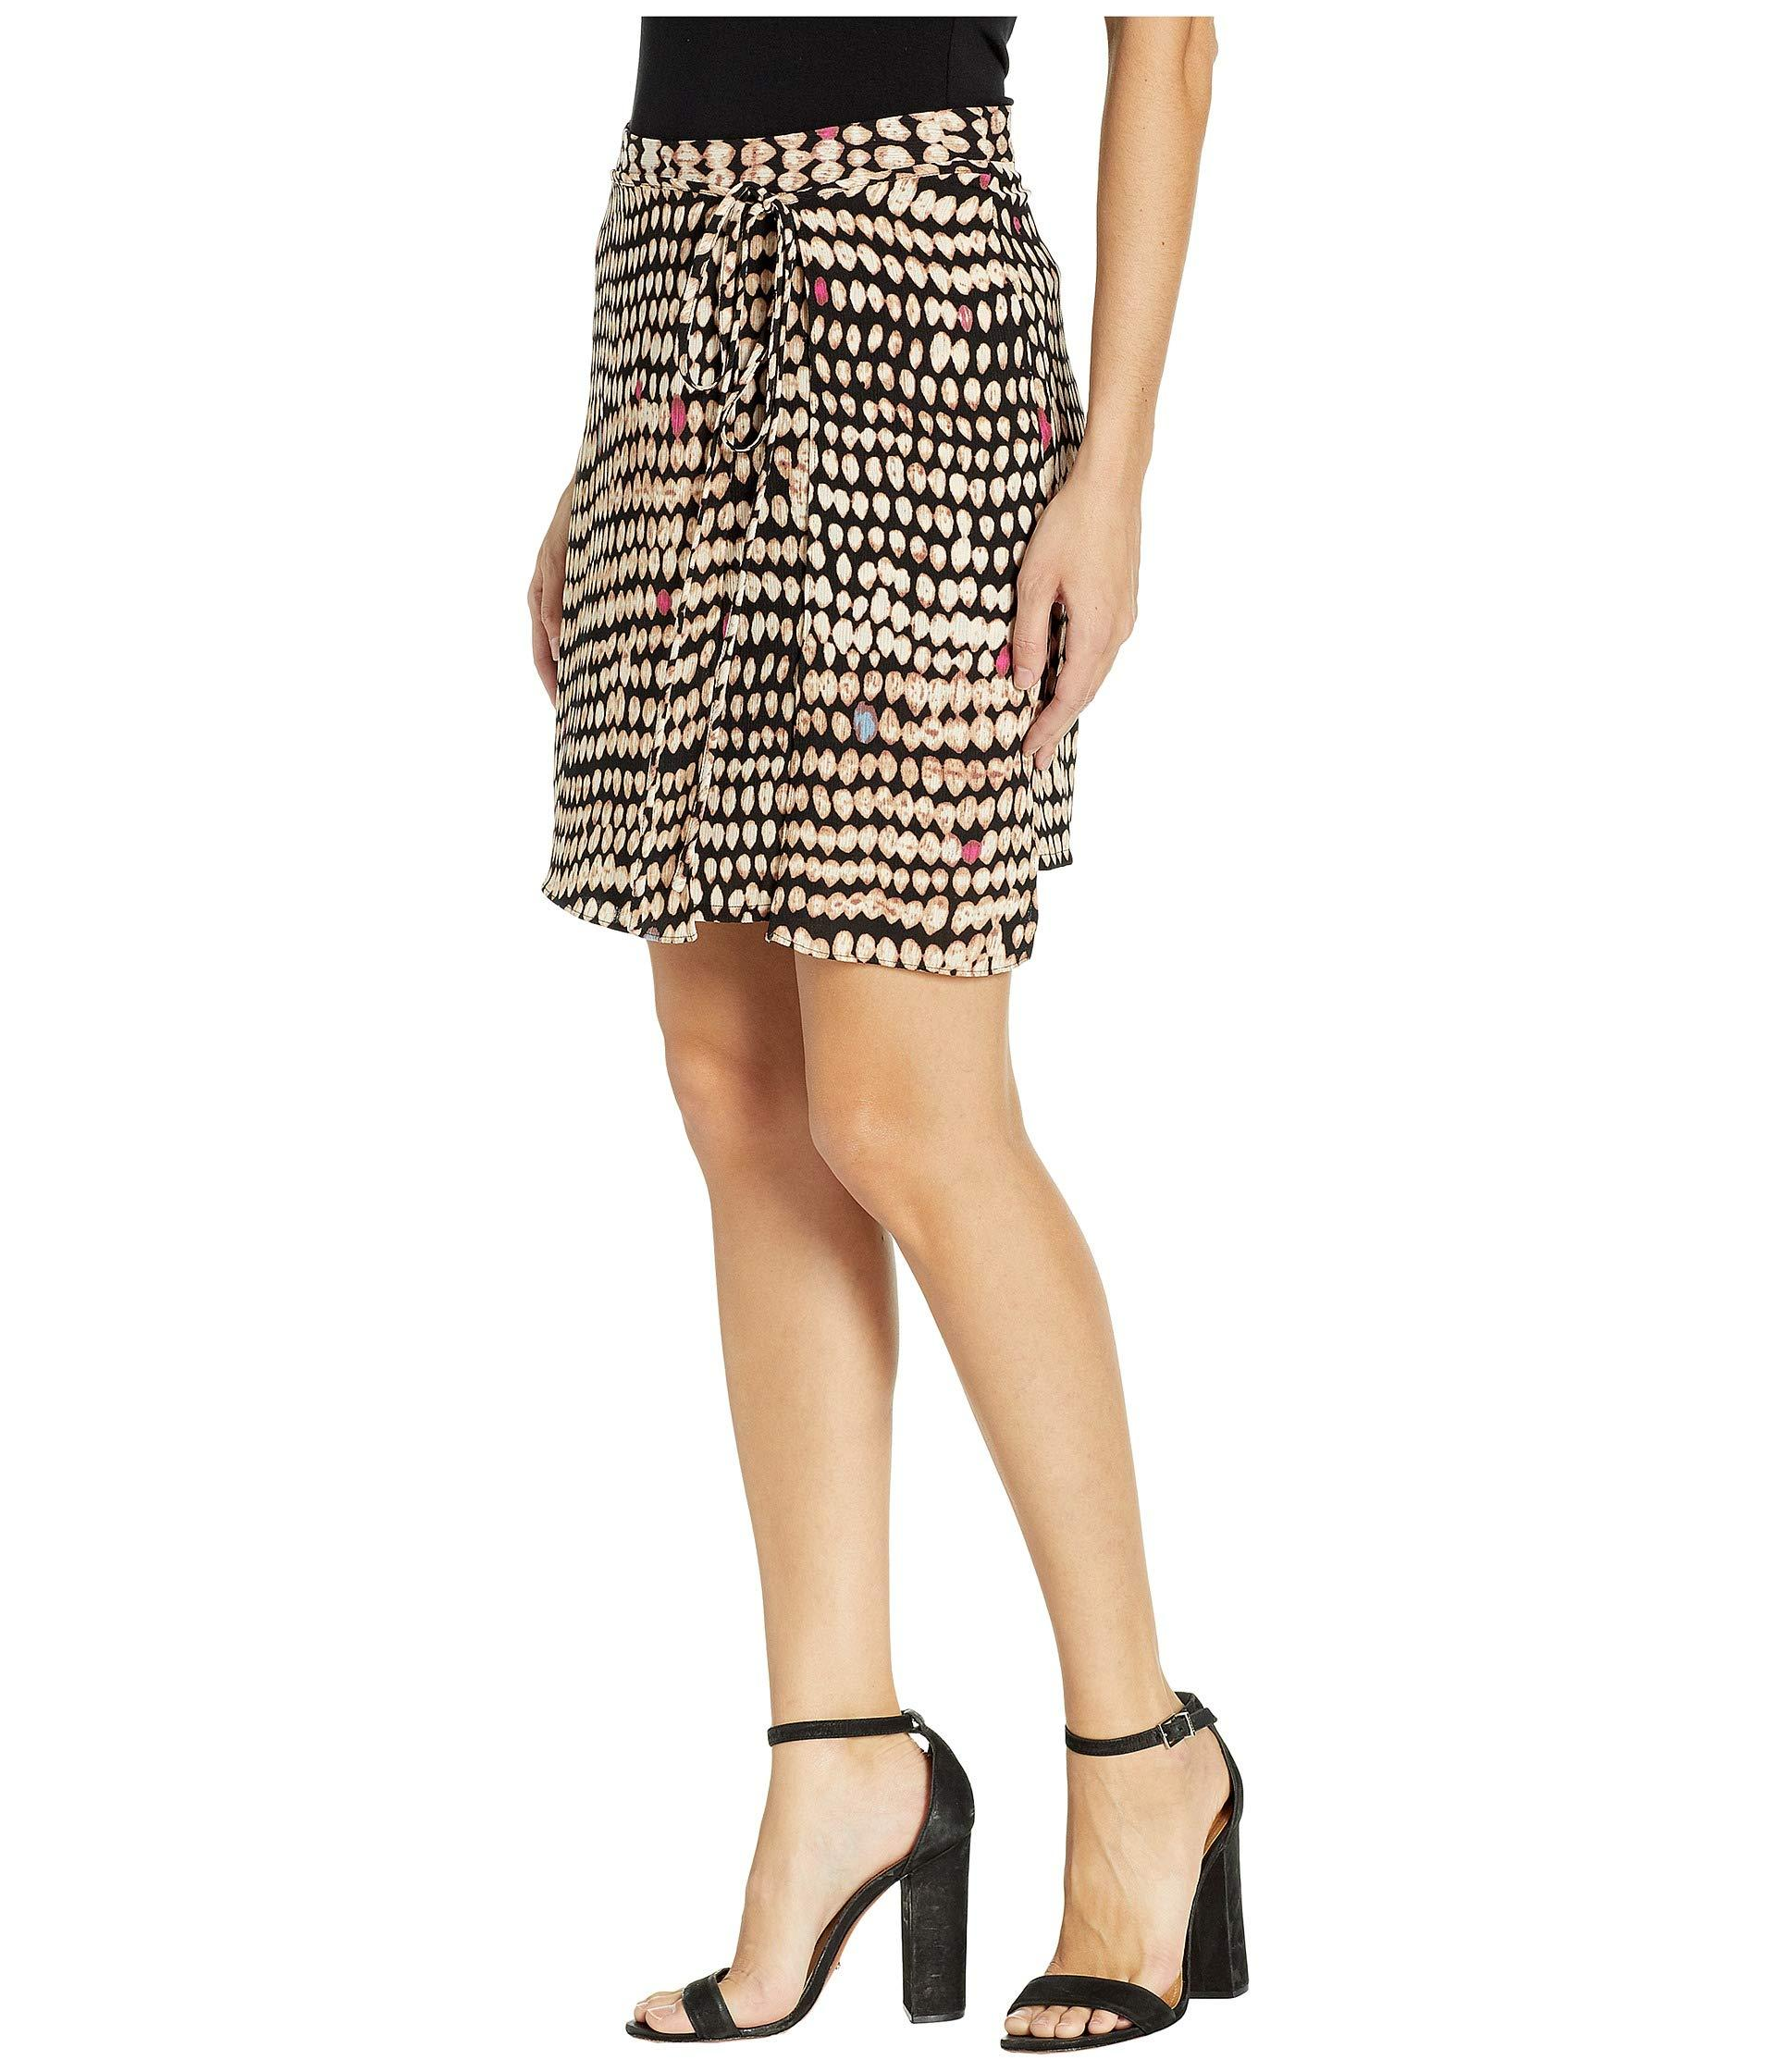 d3910e5622d1 Lyst - BCBGMAXAZRIA Sandy Dots Mini Skirt in Black